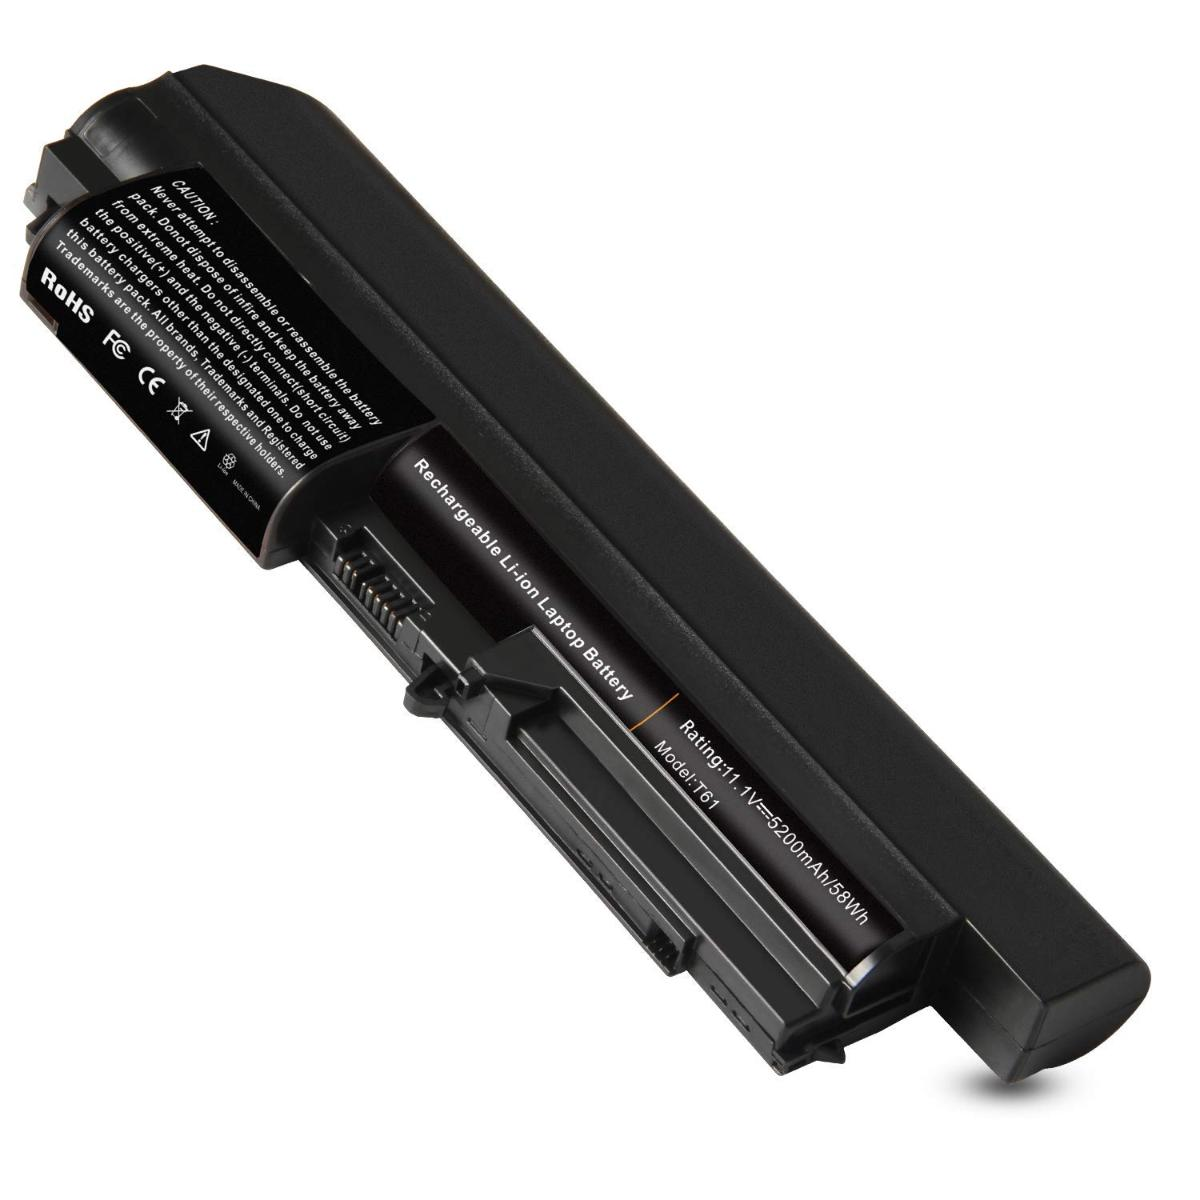 "Μπαταρία Laptop - Battery for Lenovo ThinkPad R61i 7742 ThinkPad T400 ThinkPad T400 2764 T400 2765 T400 6473 ThinkPad T400 7417 ThinkPad T61 (14.1"" widescreen) T61 1959 T61 6377 OEM Υψηλής ποιότητας (Κωδ.1-BAT0012(4.4Ah))"